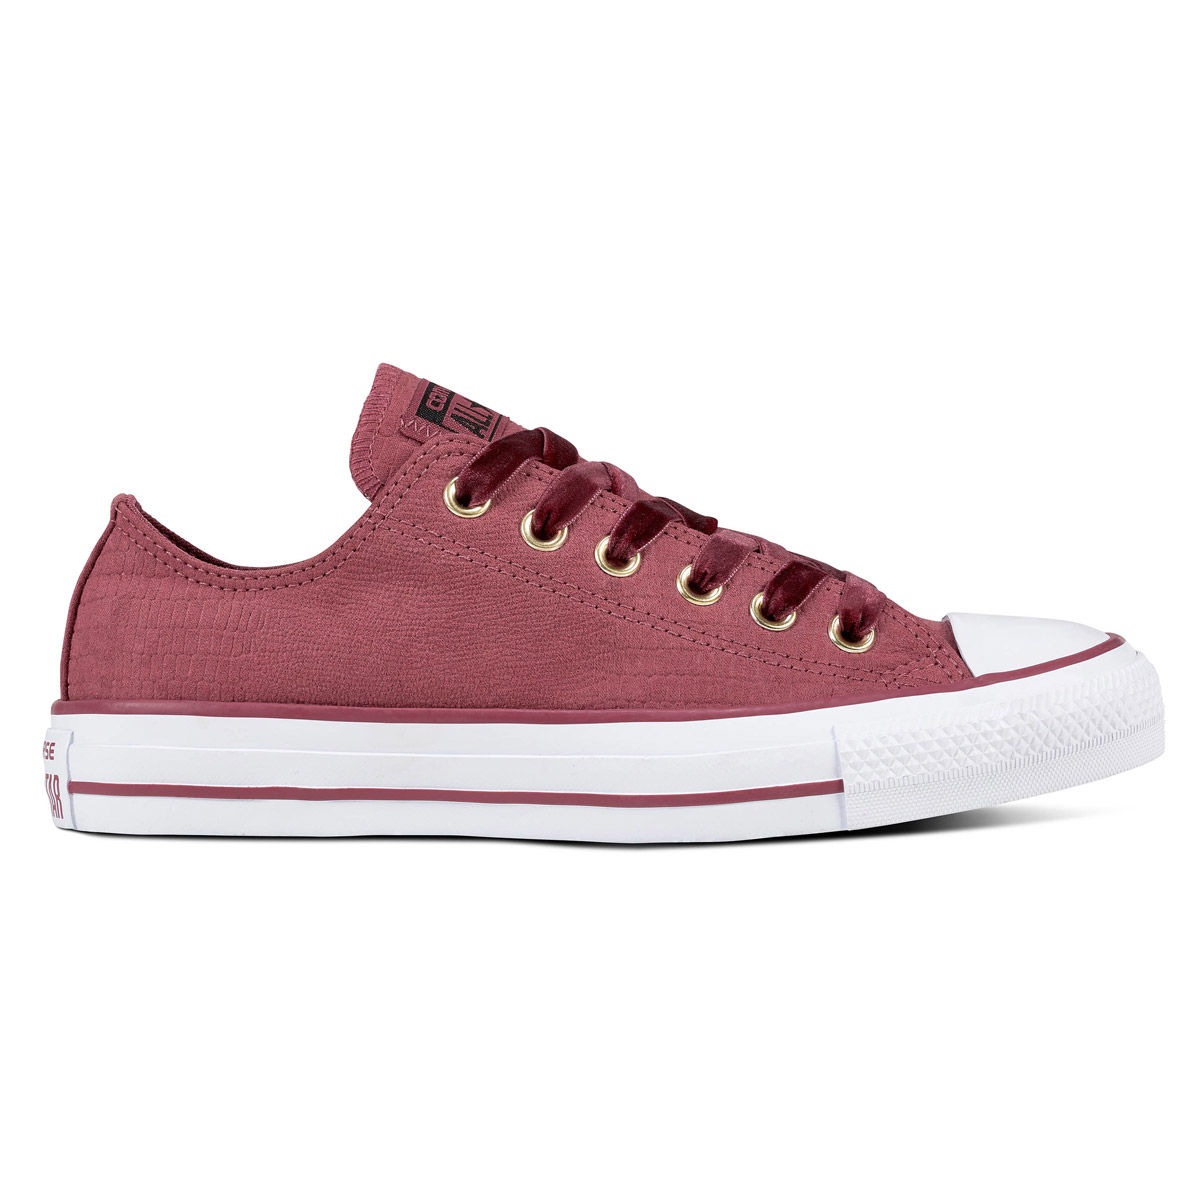 Converse Chuck Taylor All Star Gator Glam Low Top Womens Casual Shoe